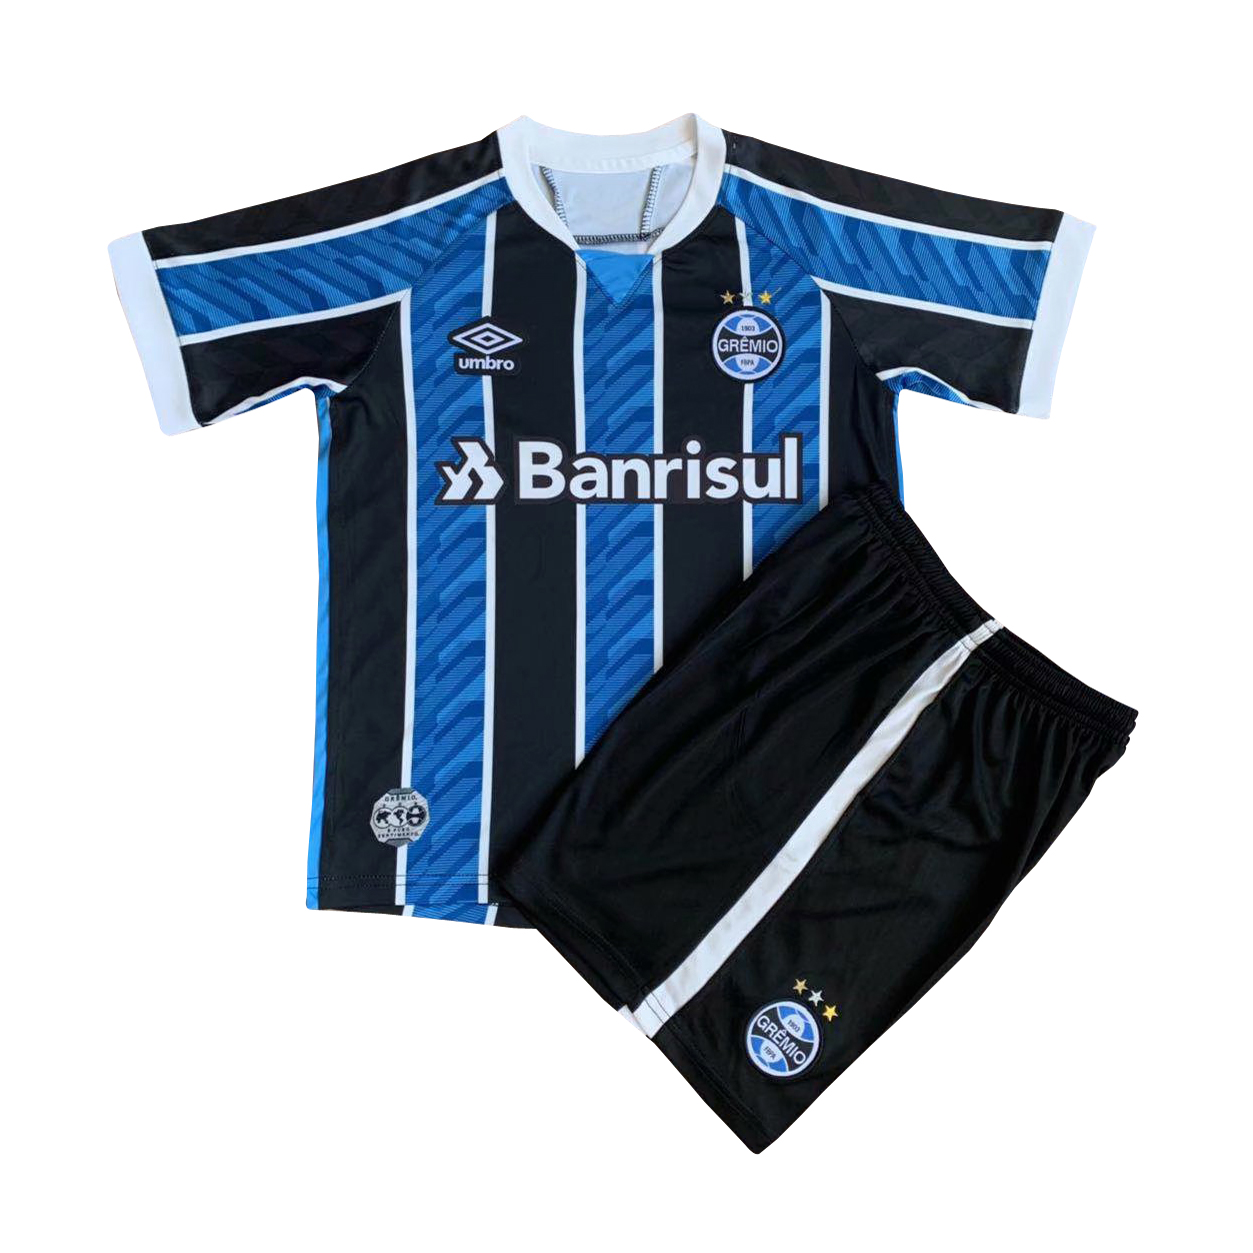 US$ 14.8 - Gremio Home Jersey Kids 2020/21 - www ...